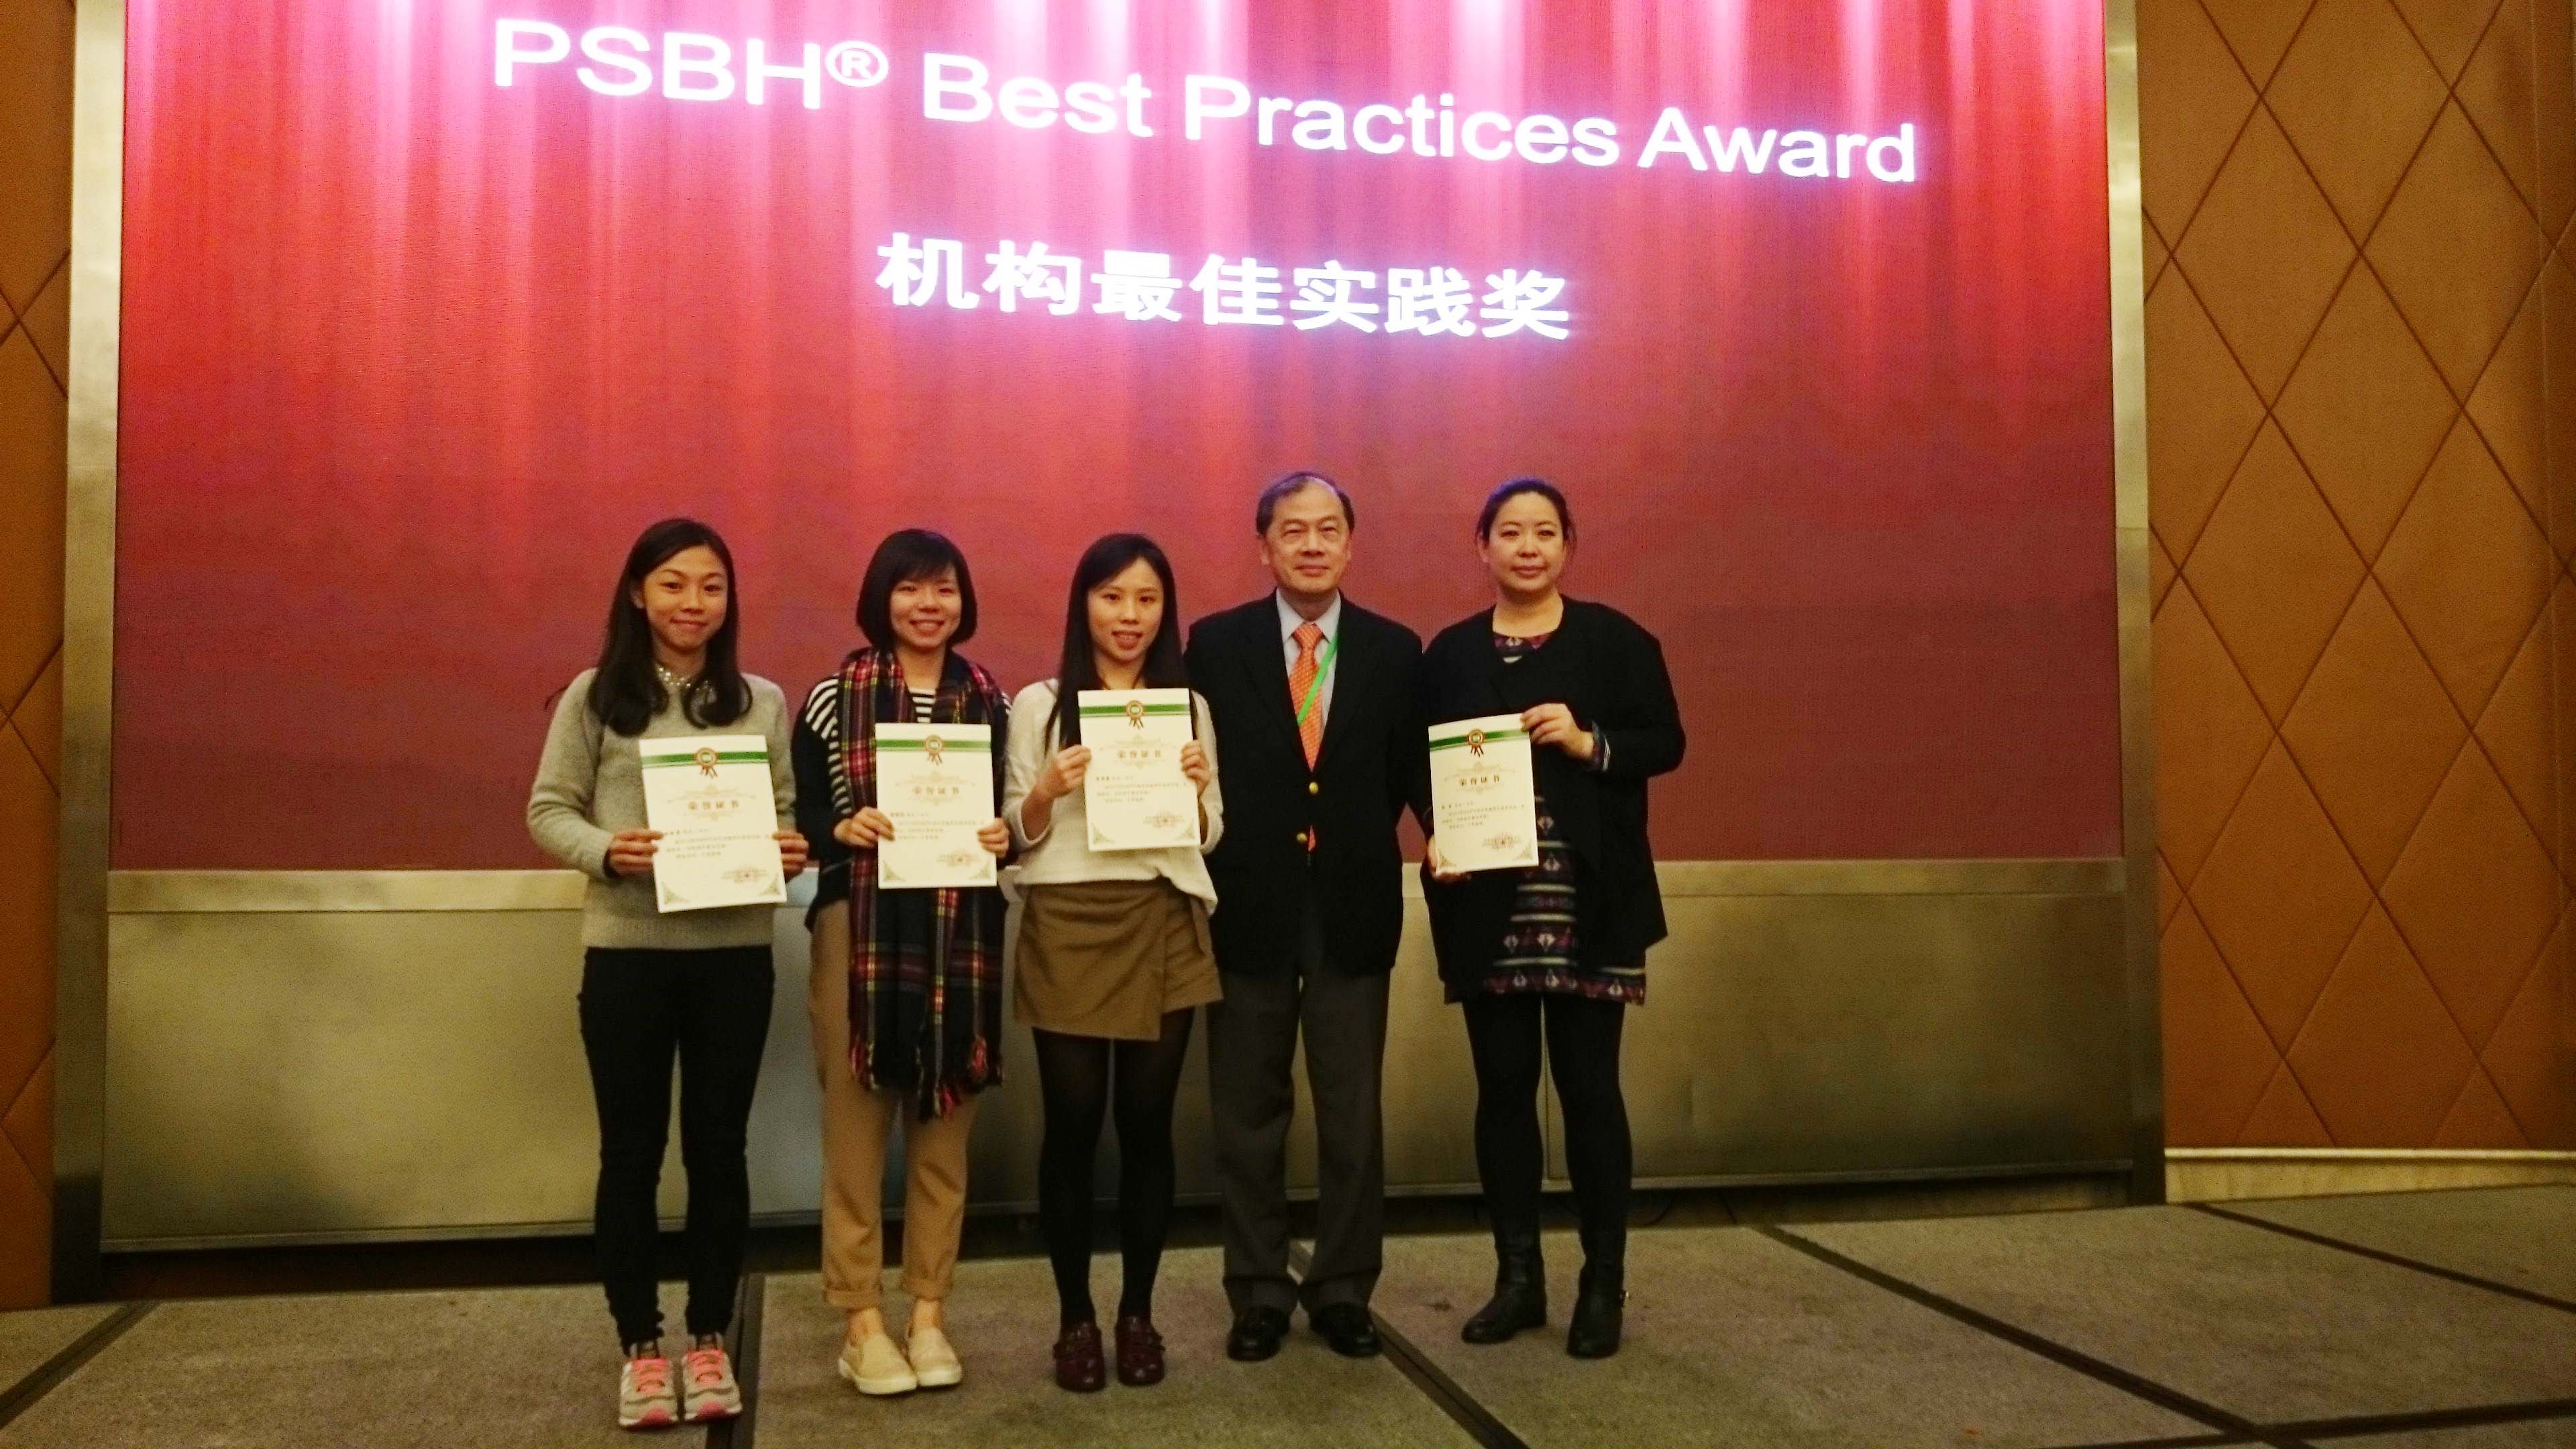 PSBH Best Practices Award